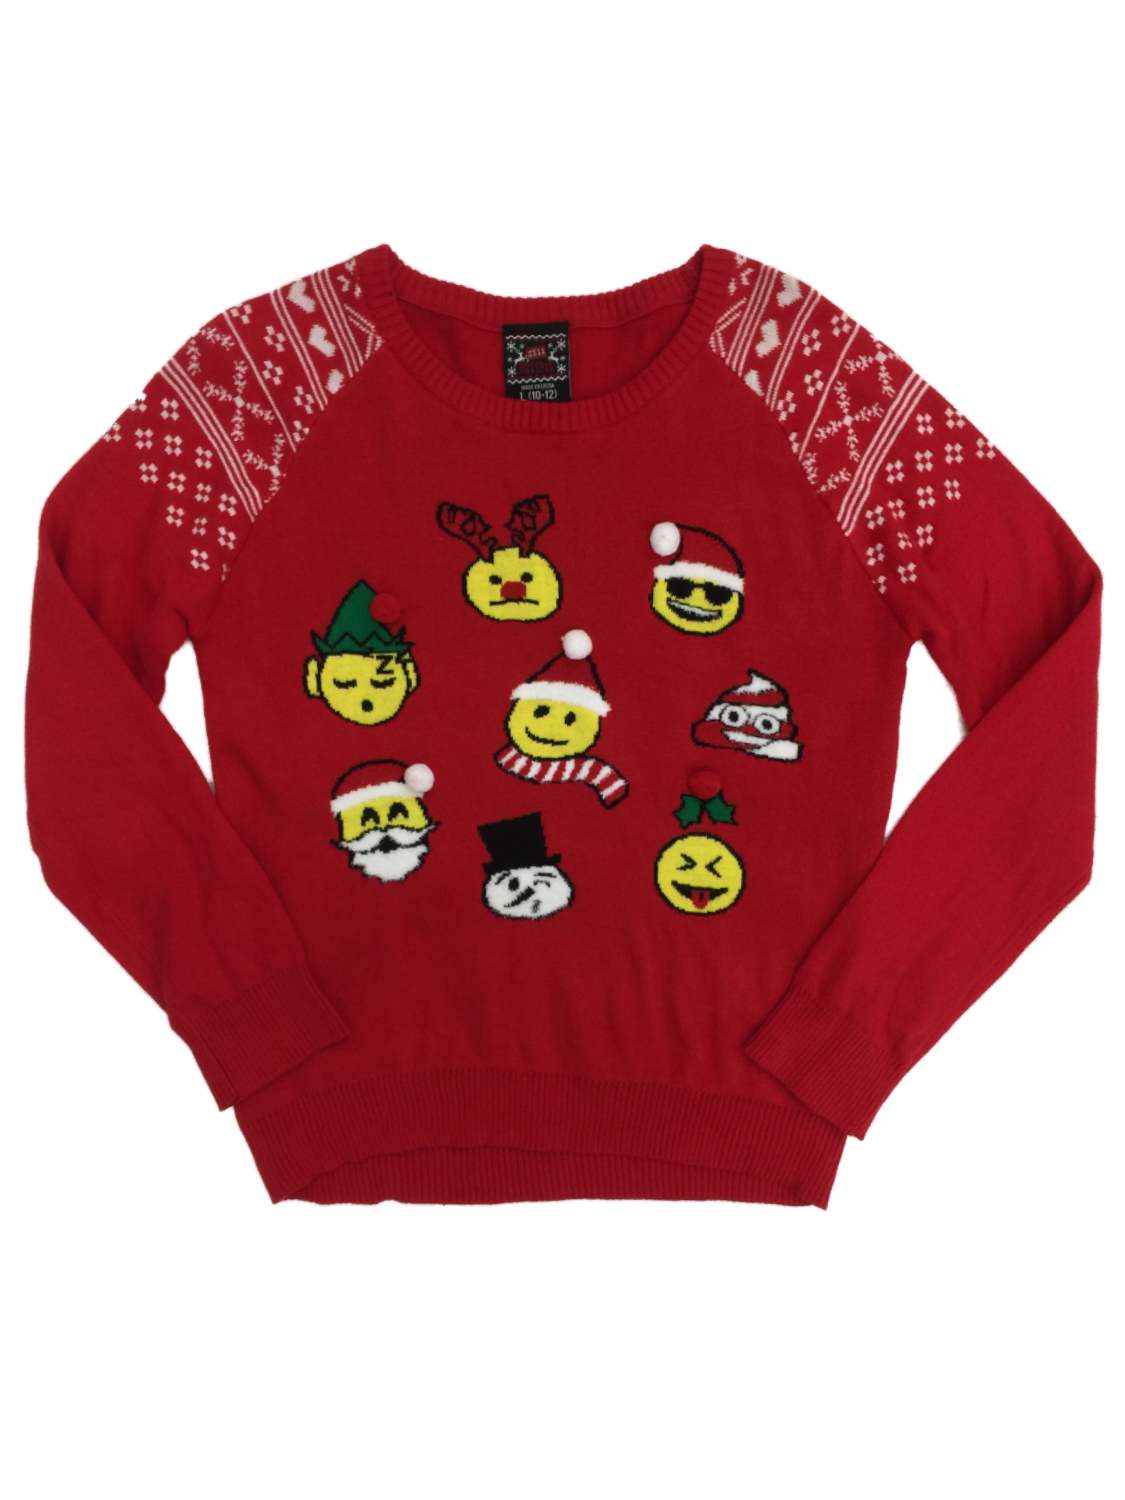 Girls Red Emoji Christmas Holiday Sweater Santa Snowman Reindeer & Poop